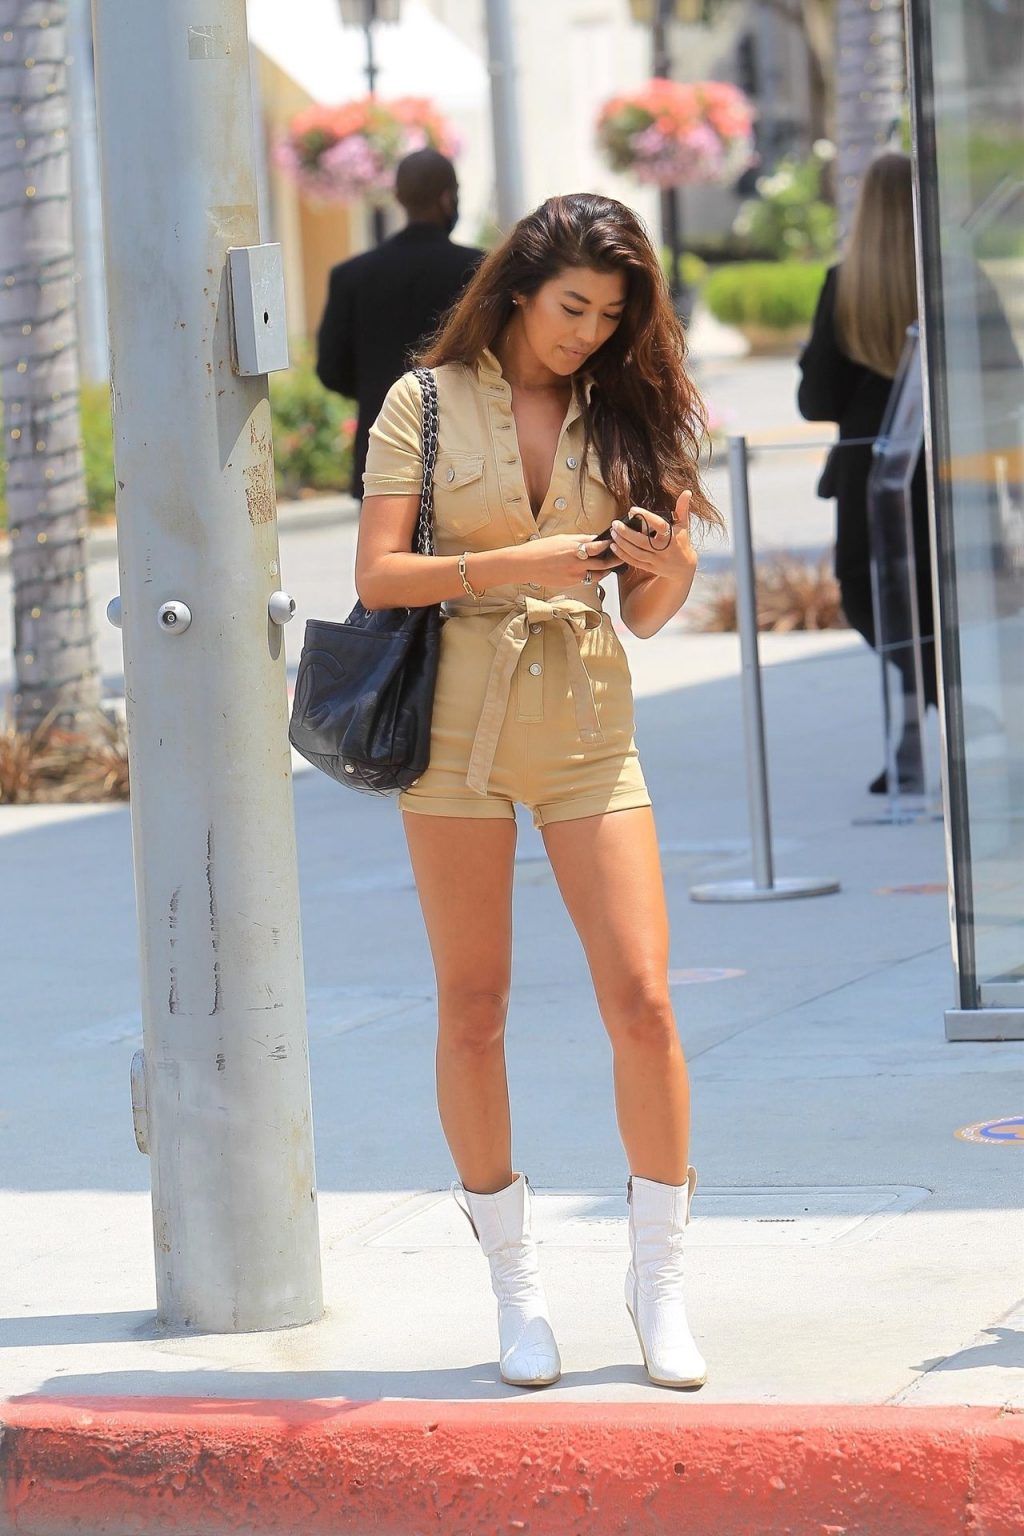 Jenn Lee Shows Off Her Sexy Legs in WeHo (9 Photos)